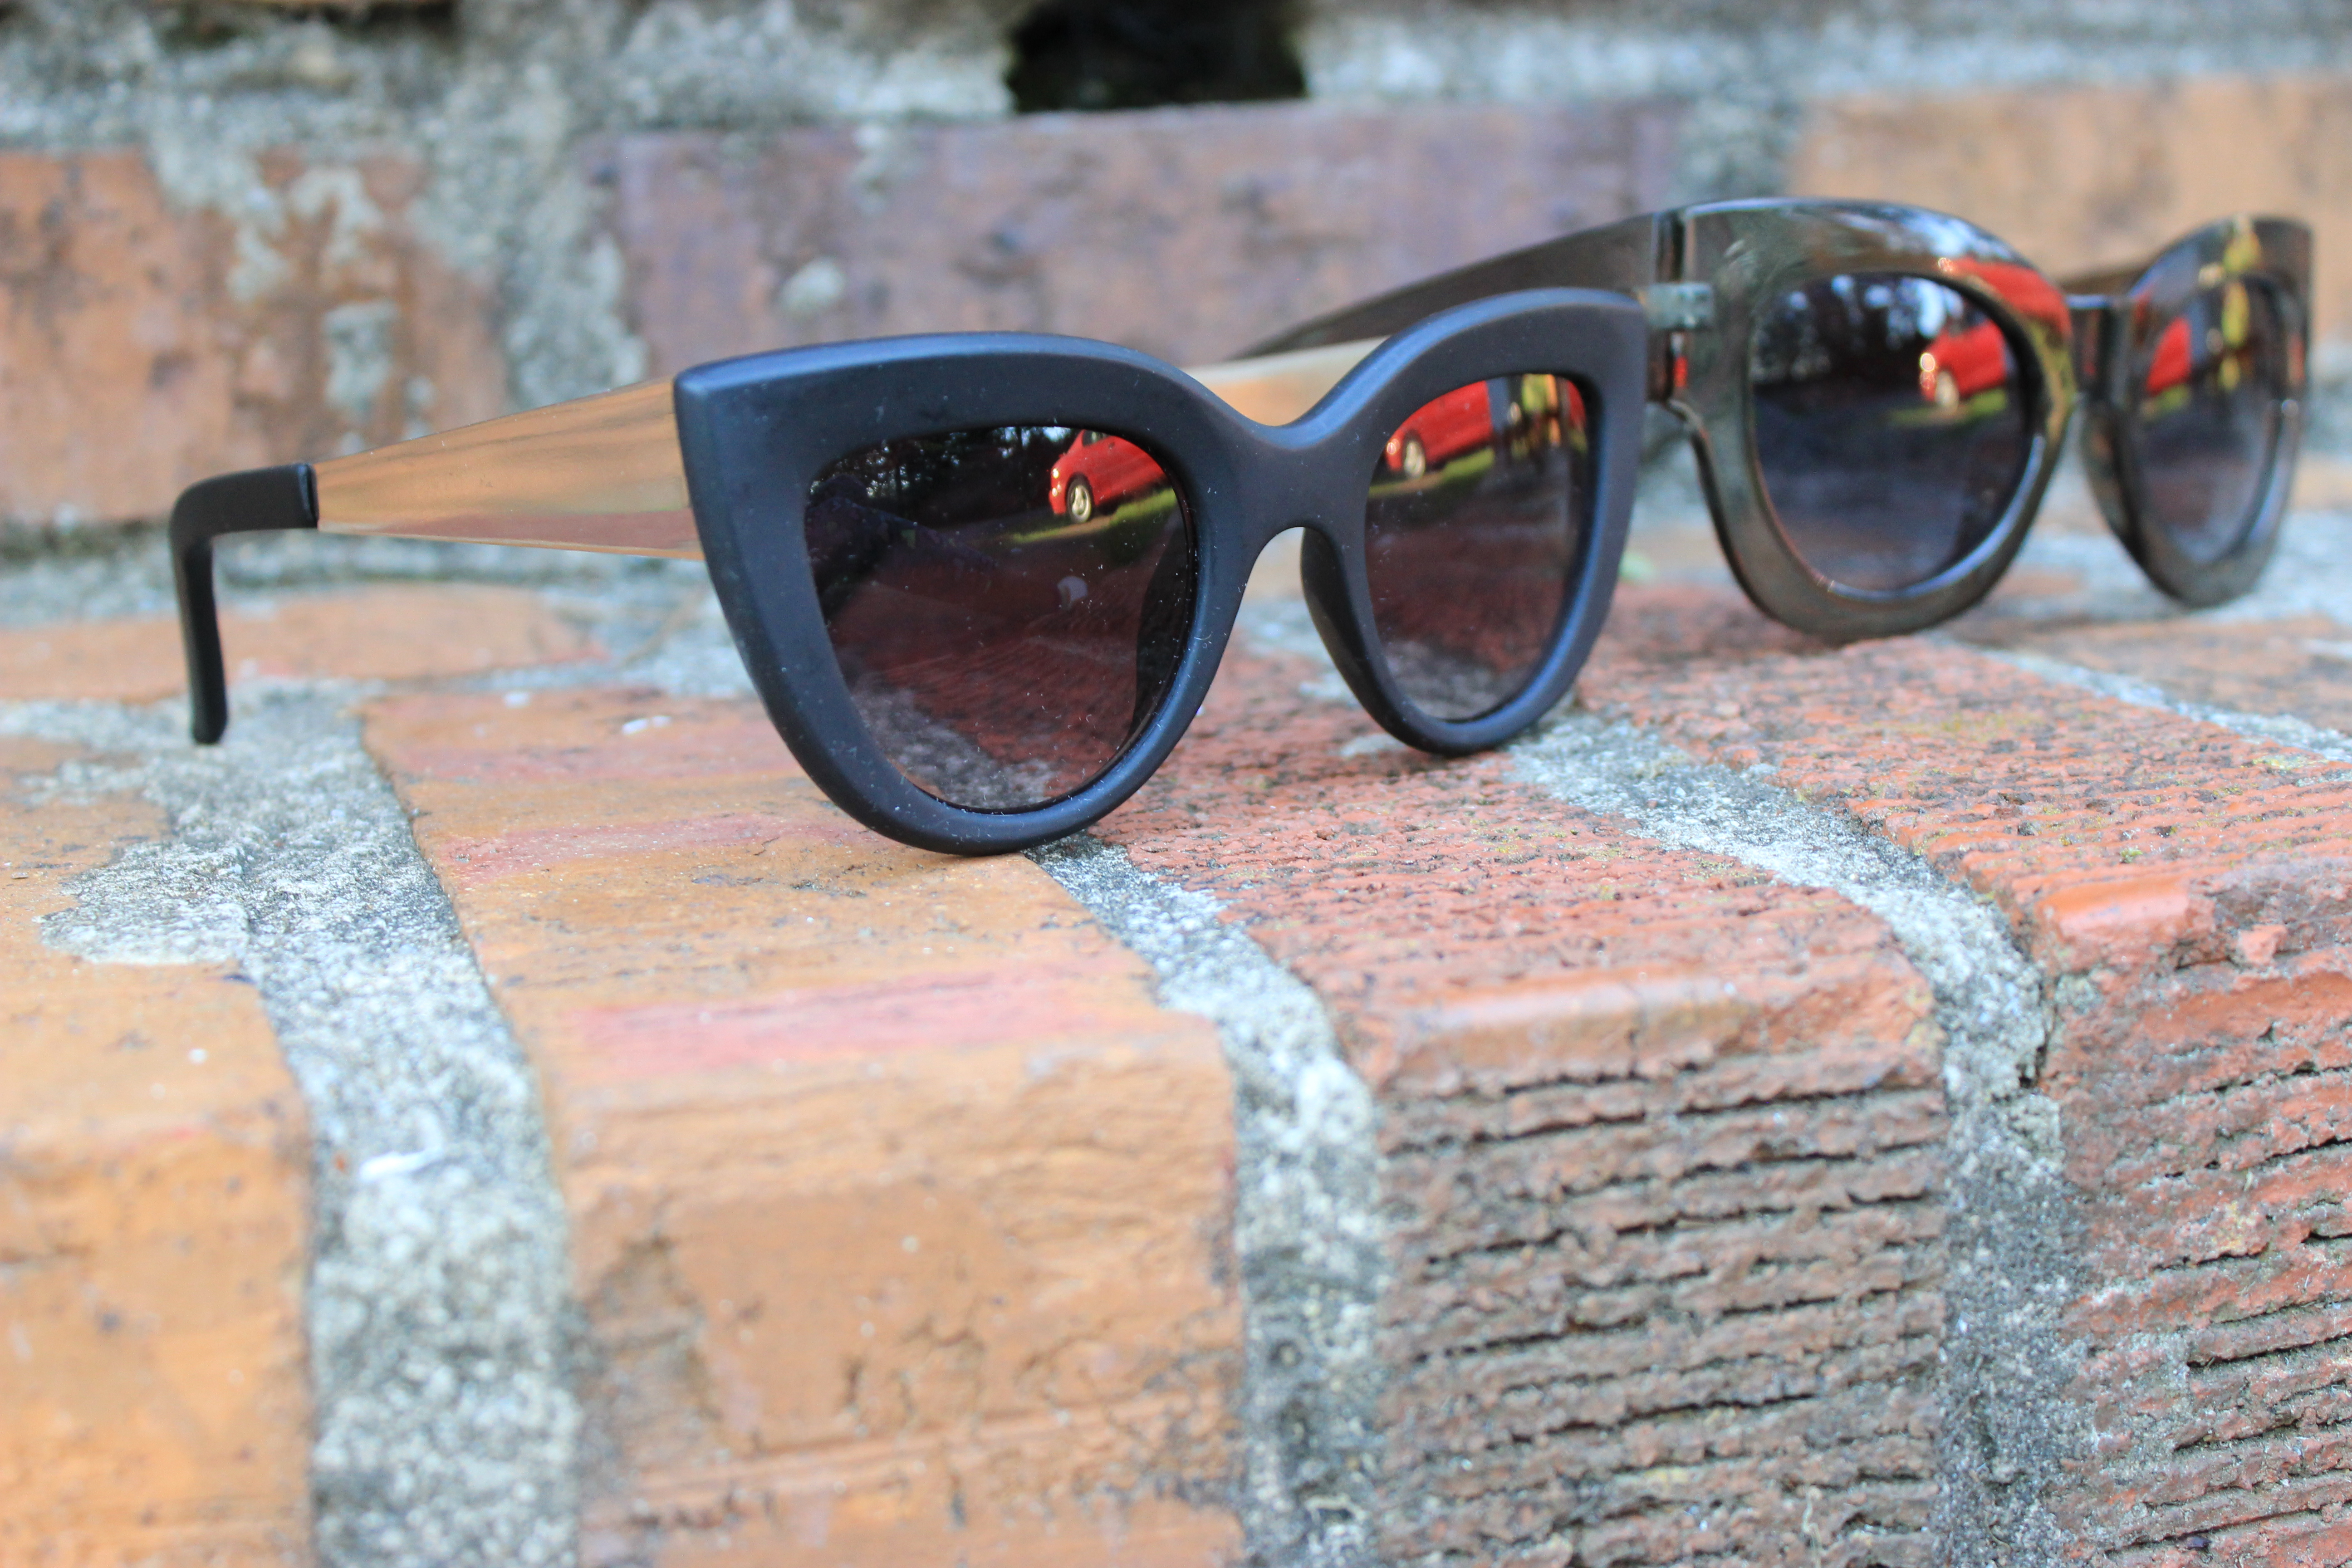 Style-Guide-Summer-Sunglasses-Summer-Sunglass-trends-2016-mirror-tinted-sunglasses-mirrored-ombre-effect-lenses-aviator-trend-2016-cat-eye-frame-sunglasses-2016-round-frame-sunglass-trend-thick-square-frame-sunglasses-Oohlalablog-22